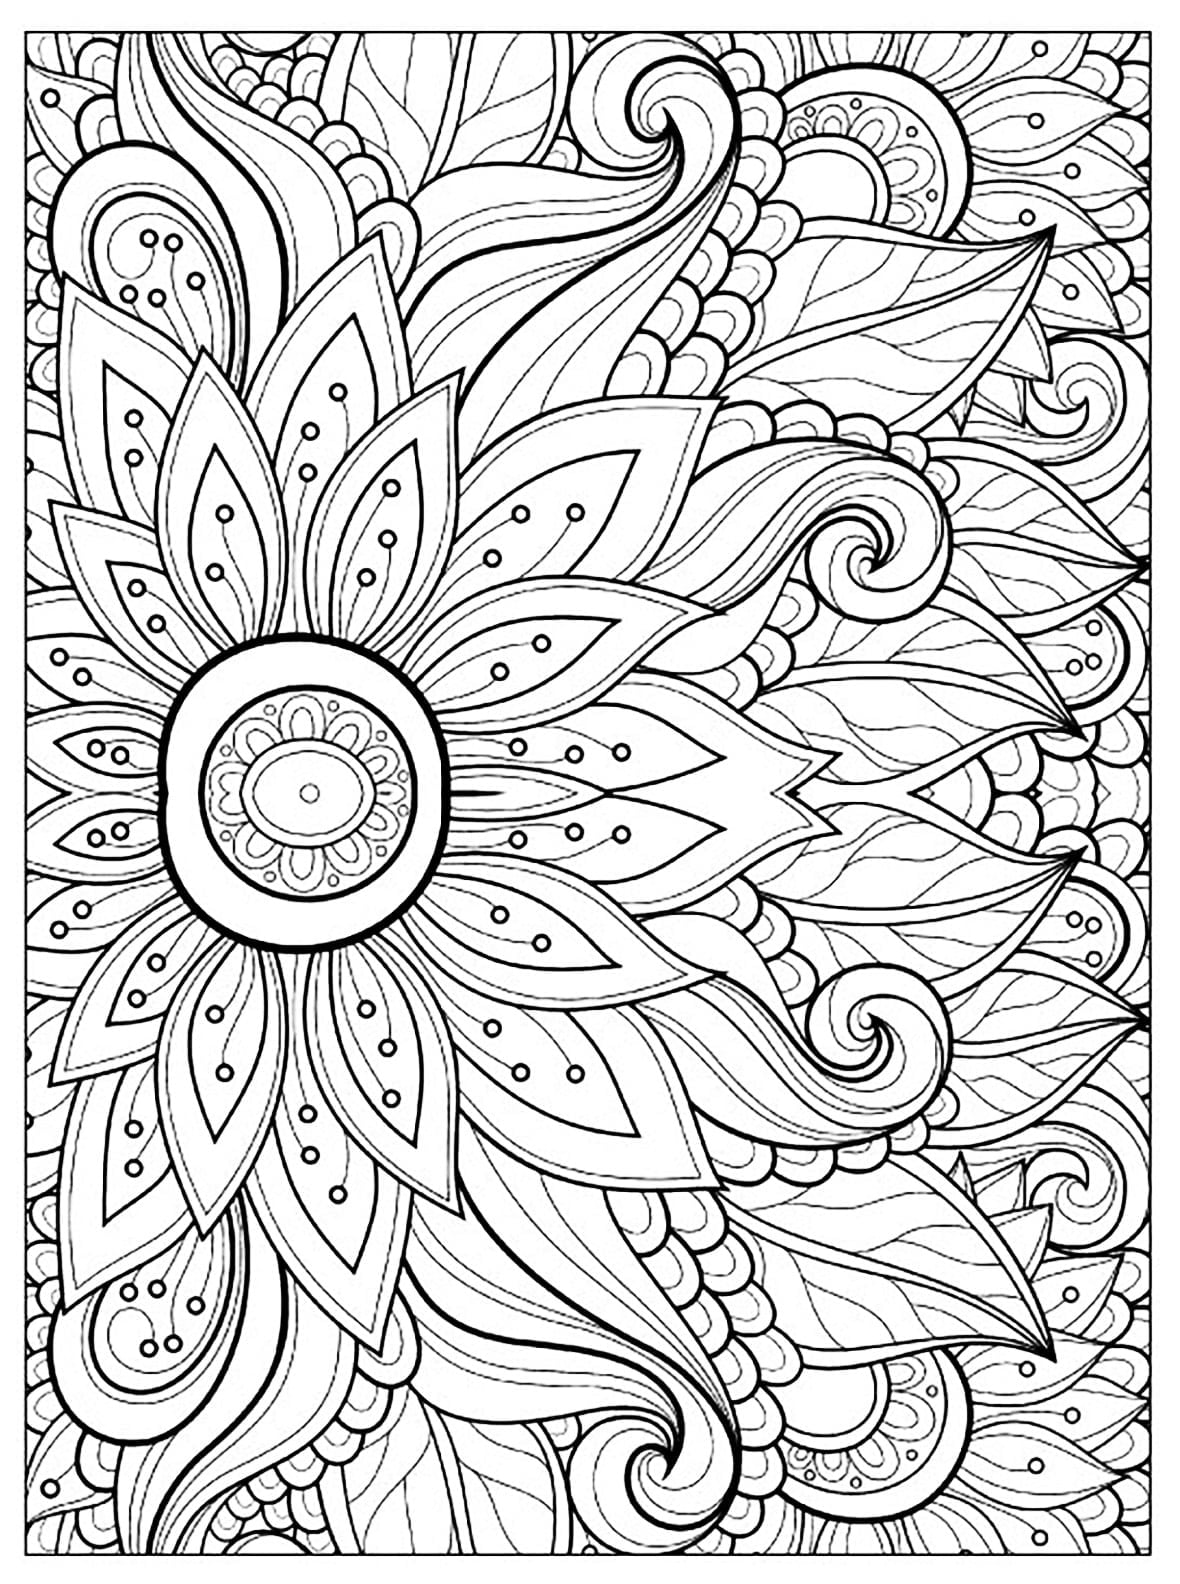 Awesome Adult Coloring Pages Flower Collection